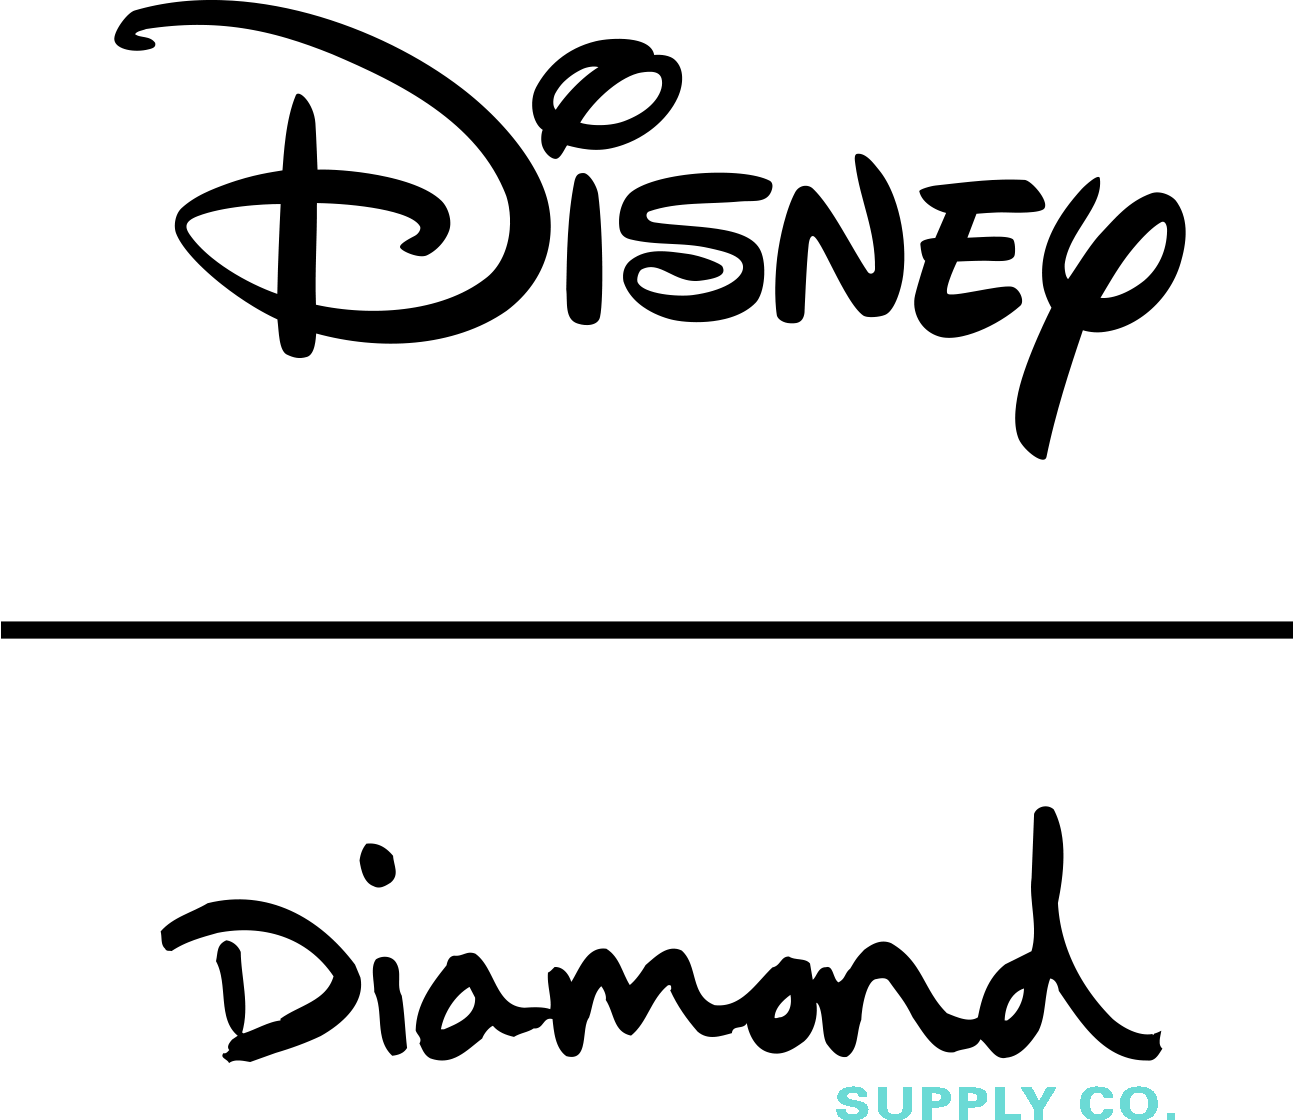 Disney & Diamond Supply Co